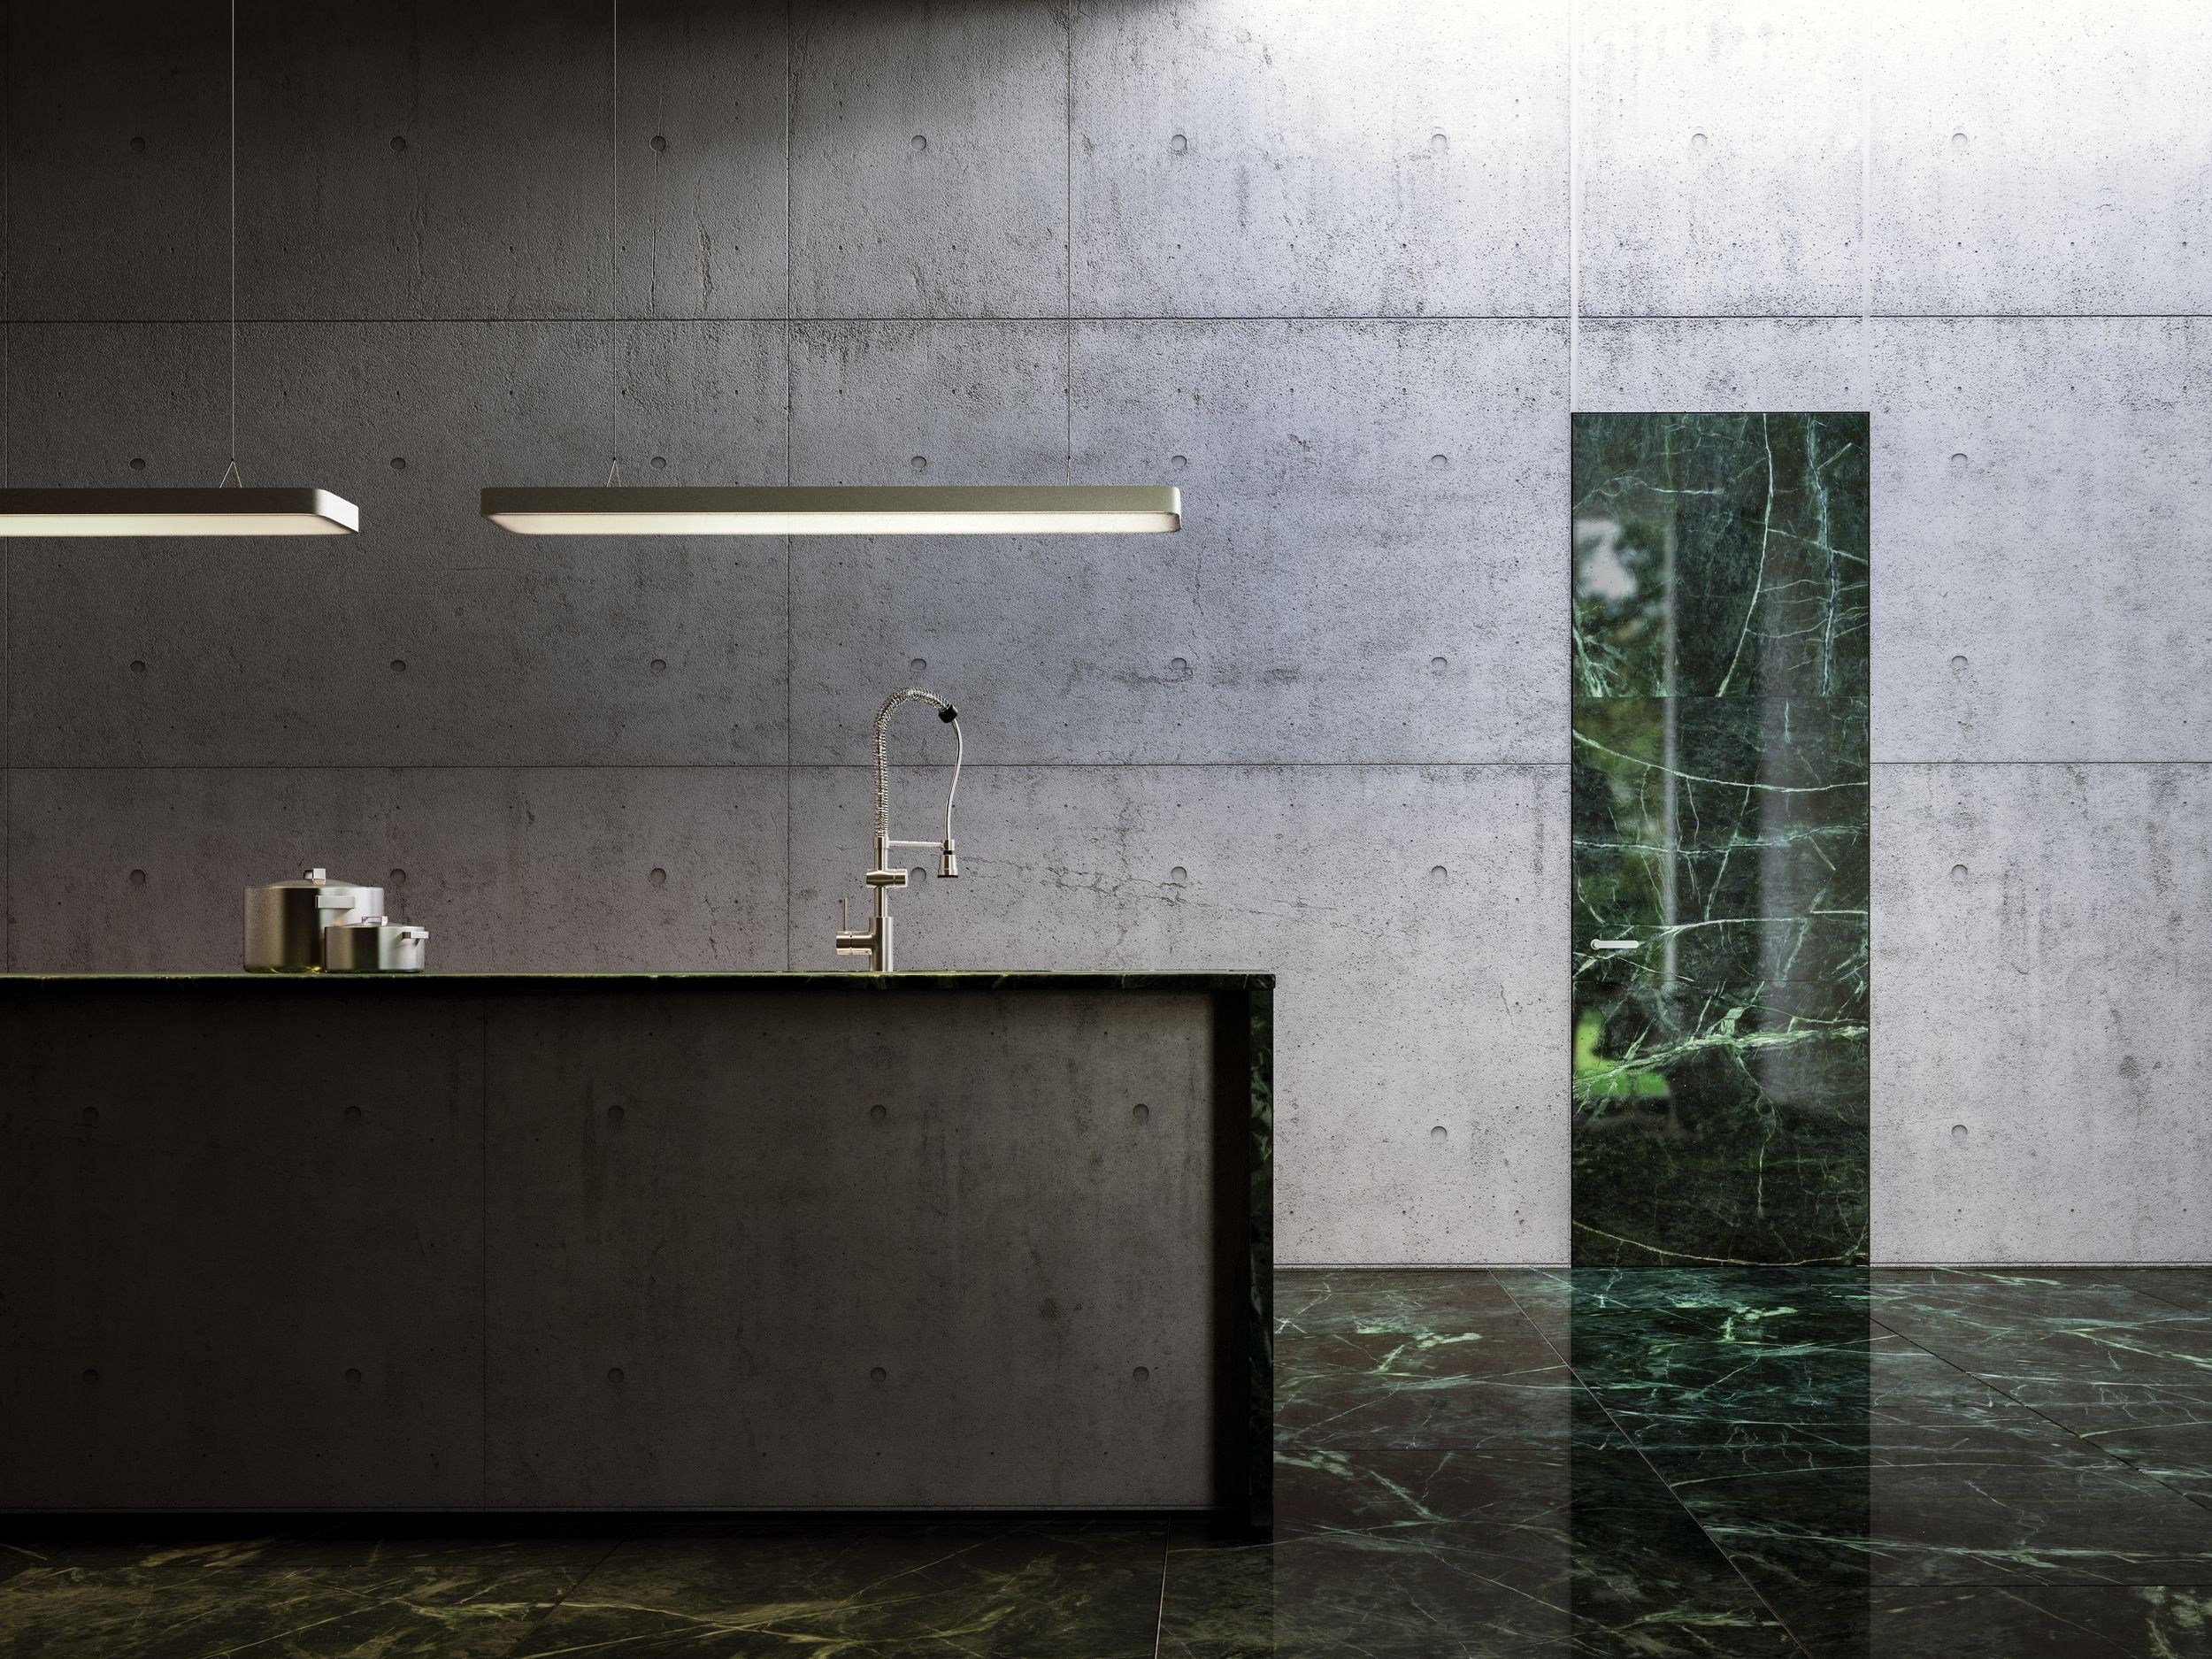 Filo 10 hinged door by l 39 invisibile by portarredo for L invisibile portarredo